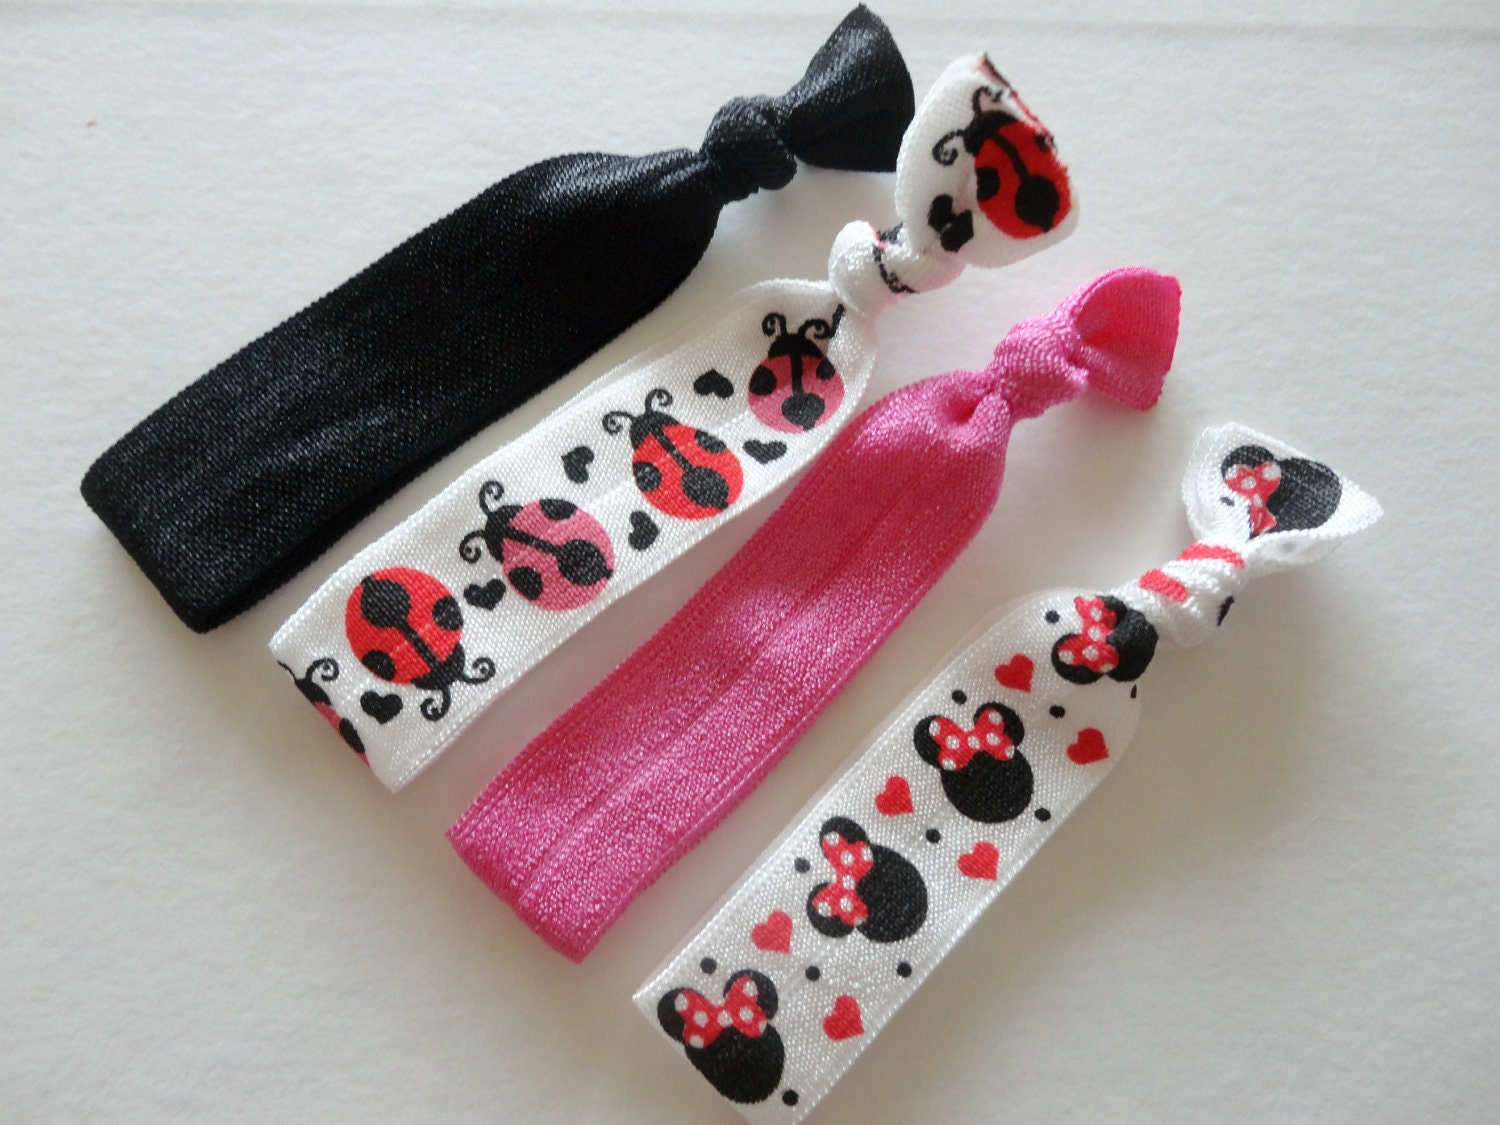 Hair ties, elastic no crease hair item, 4 for 5 Dollars, Must have hair accessory, No pull hair ties, fashion bracelets